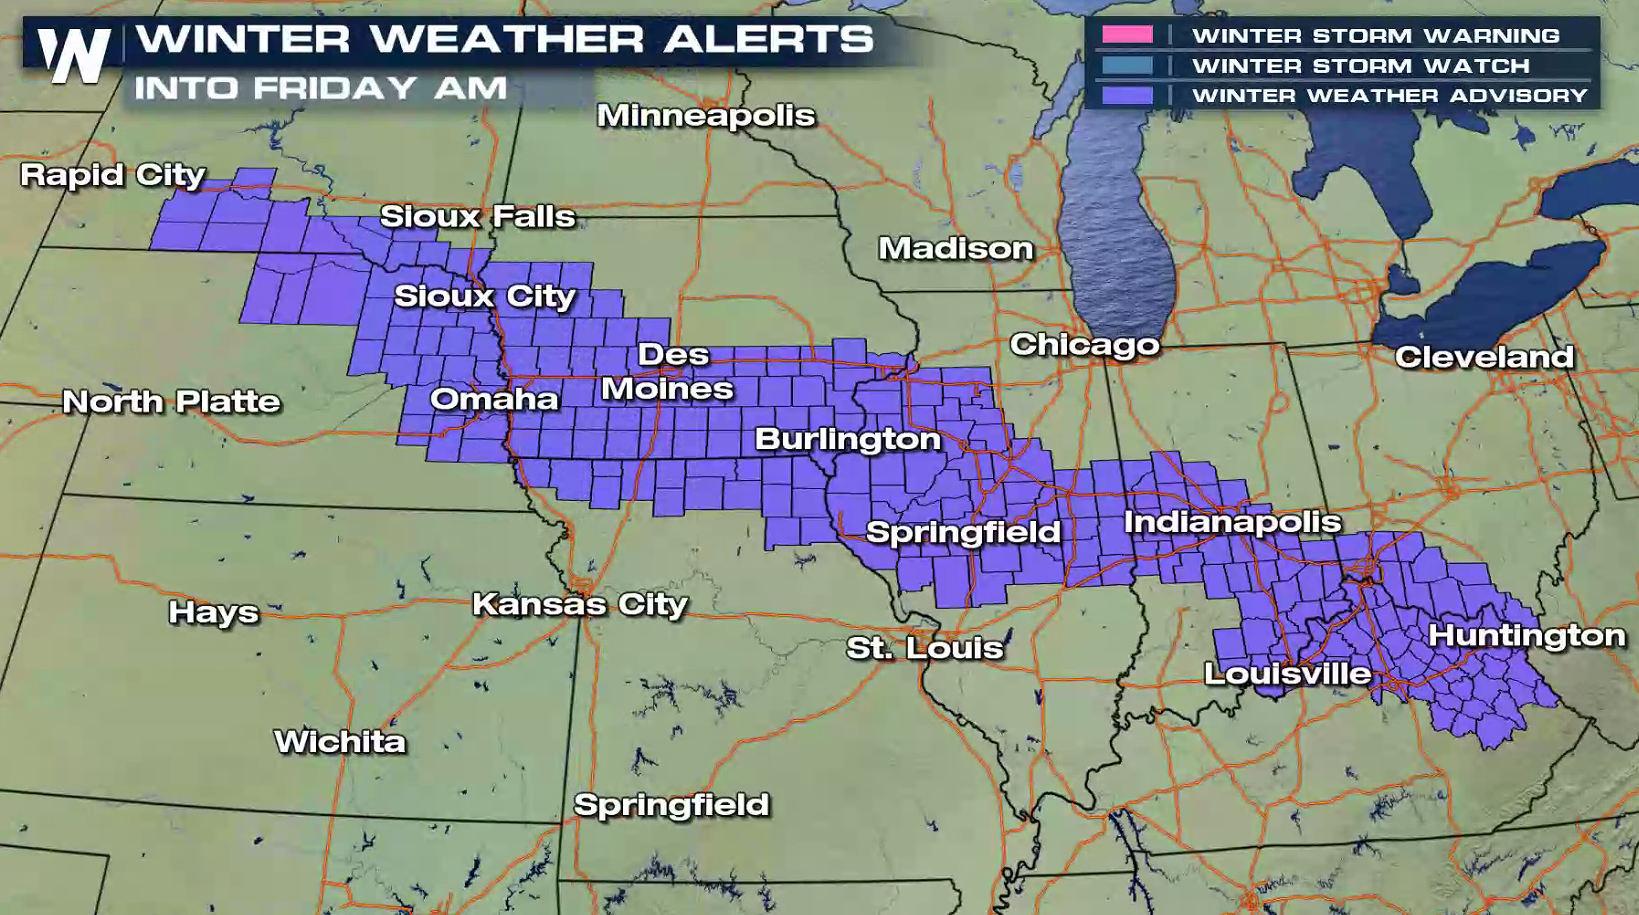 Another Quick Burst Of Snow For The Central U S  - WeatherNation